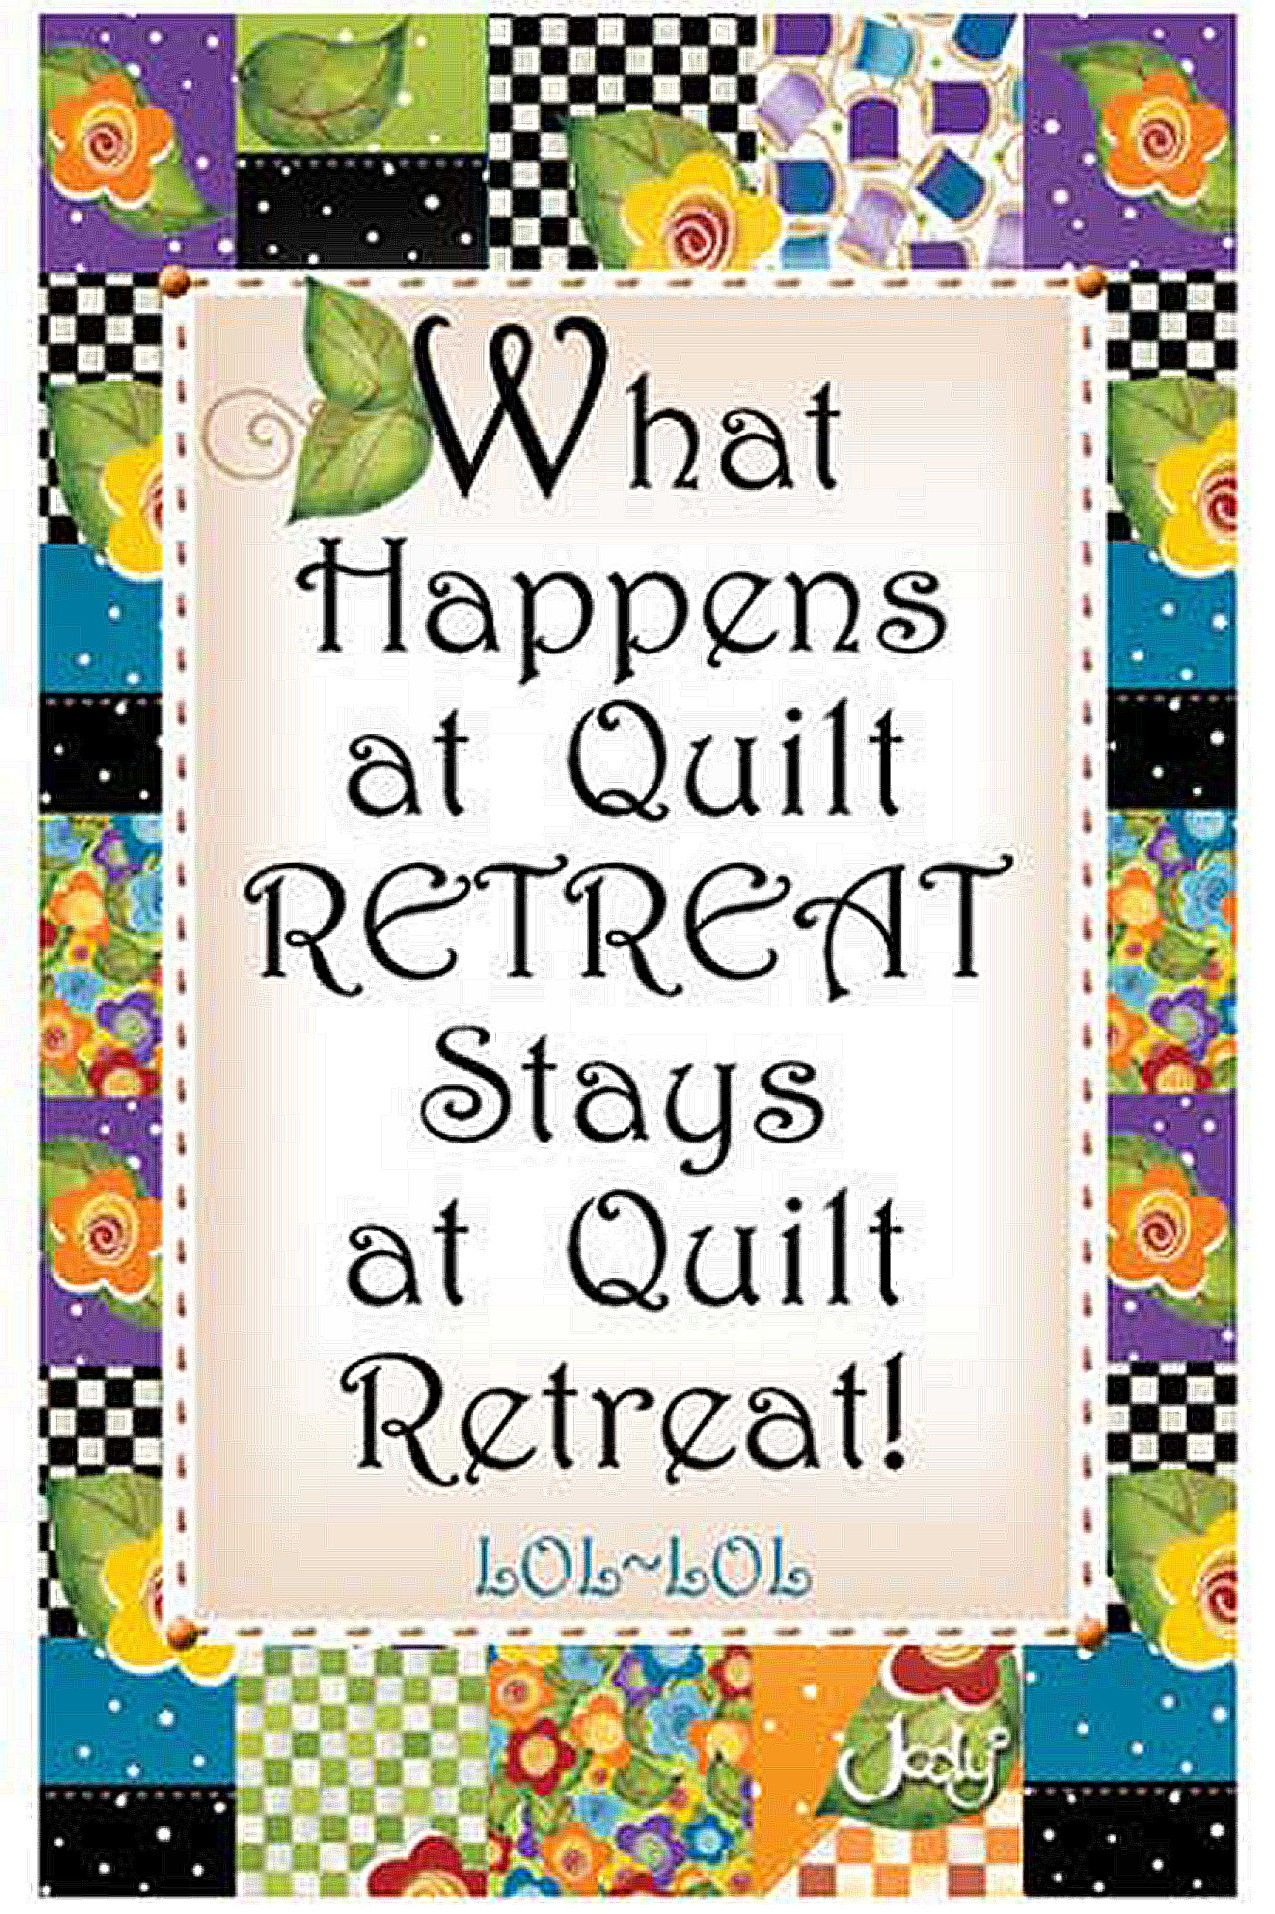 Quilting Retreat Magnet By Houghton, Jody - 2-1/4in X 3-1/2in. Magnet says: What Happens at Quilt Retreat Stays at Quilt Retreat!